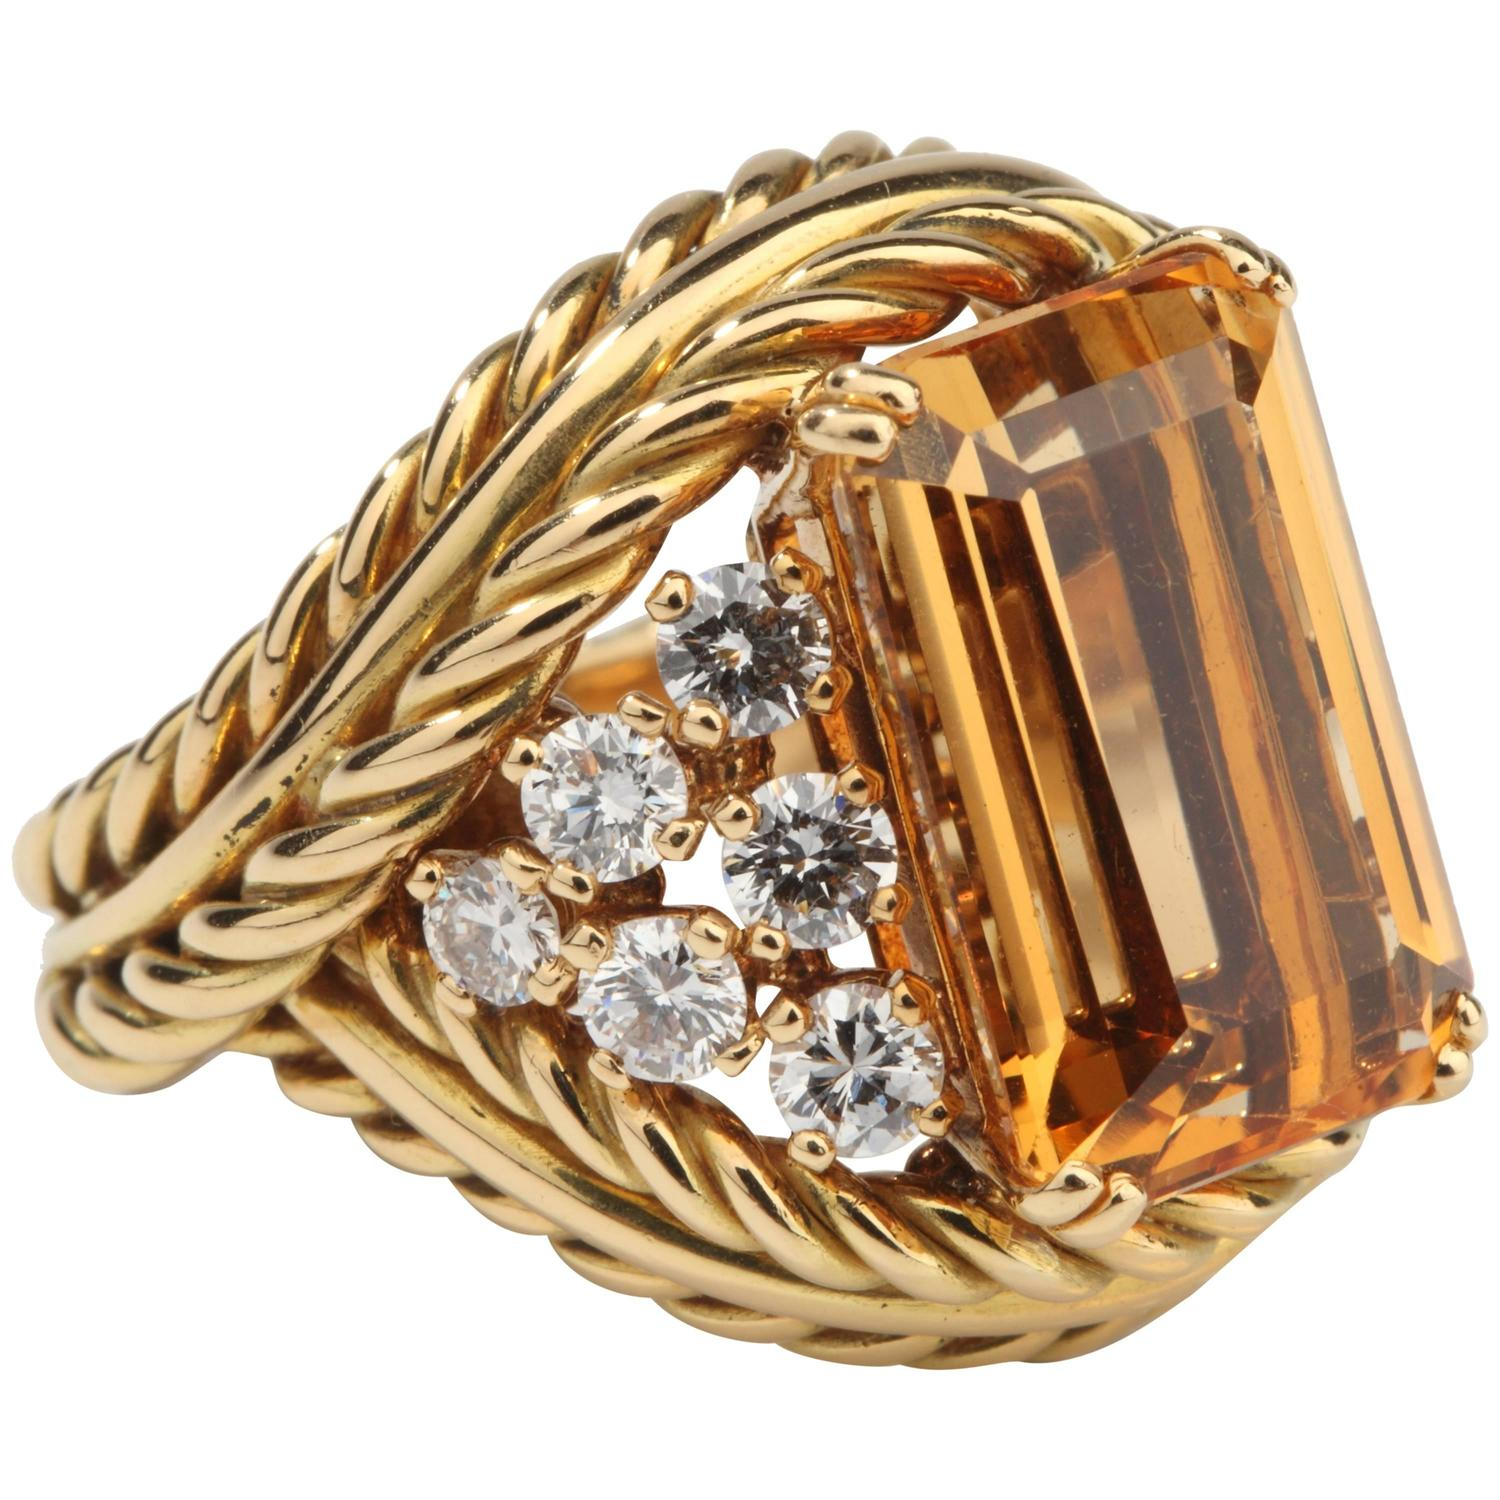 1950s Chaumet Paris Topaz Diamond Gold Ring At 1stdibs